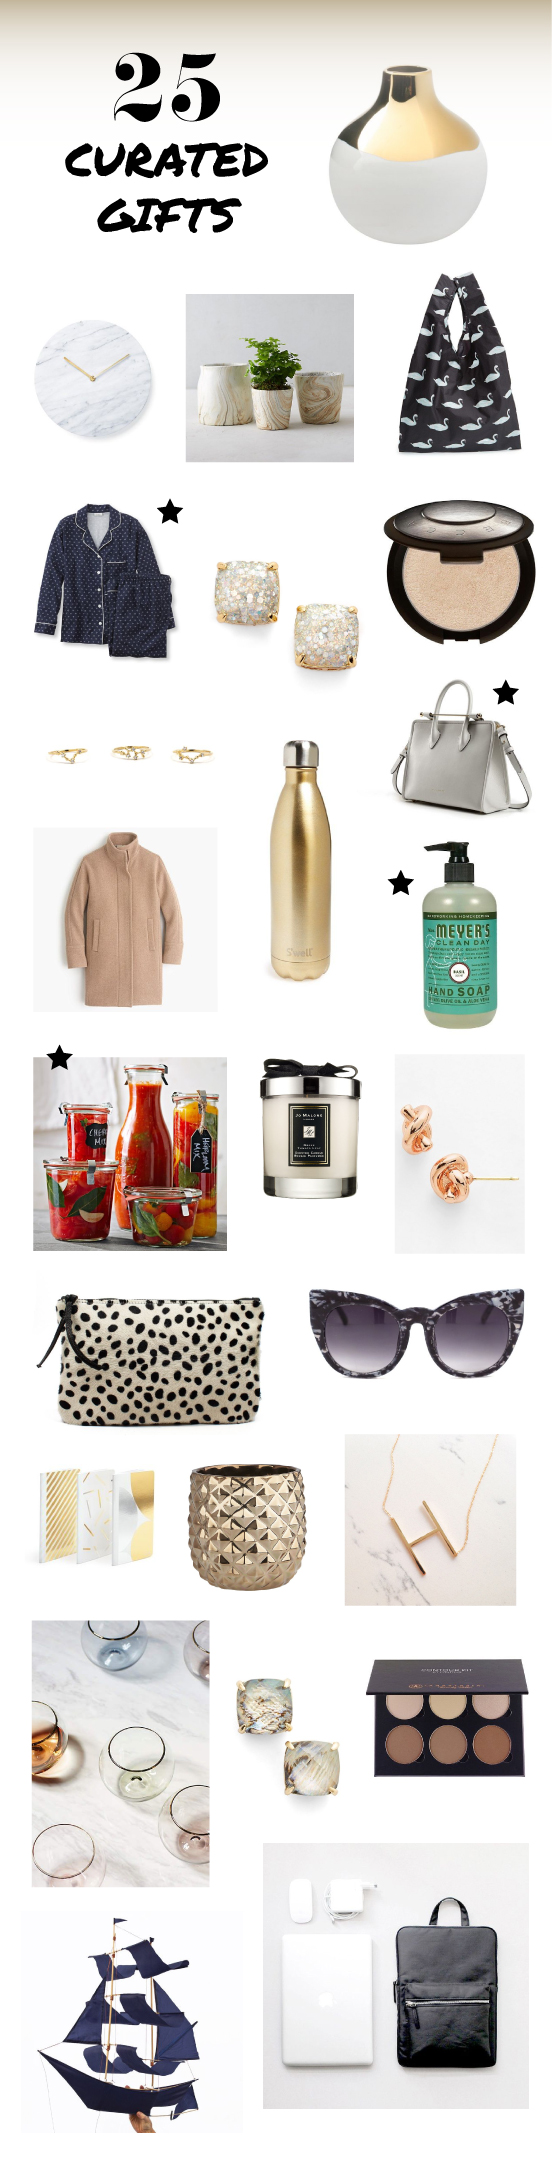 26 Curated Gift Ideas I Actually Like